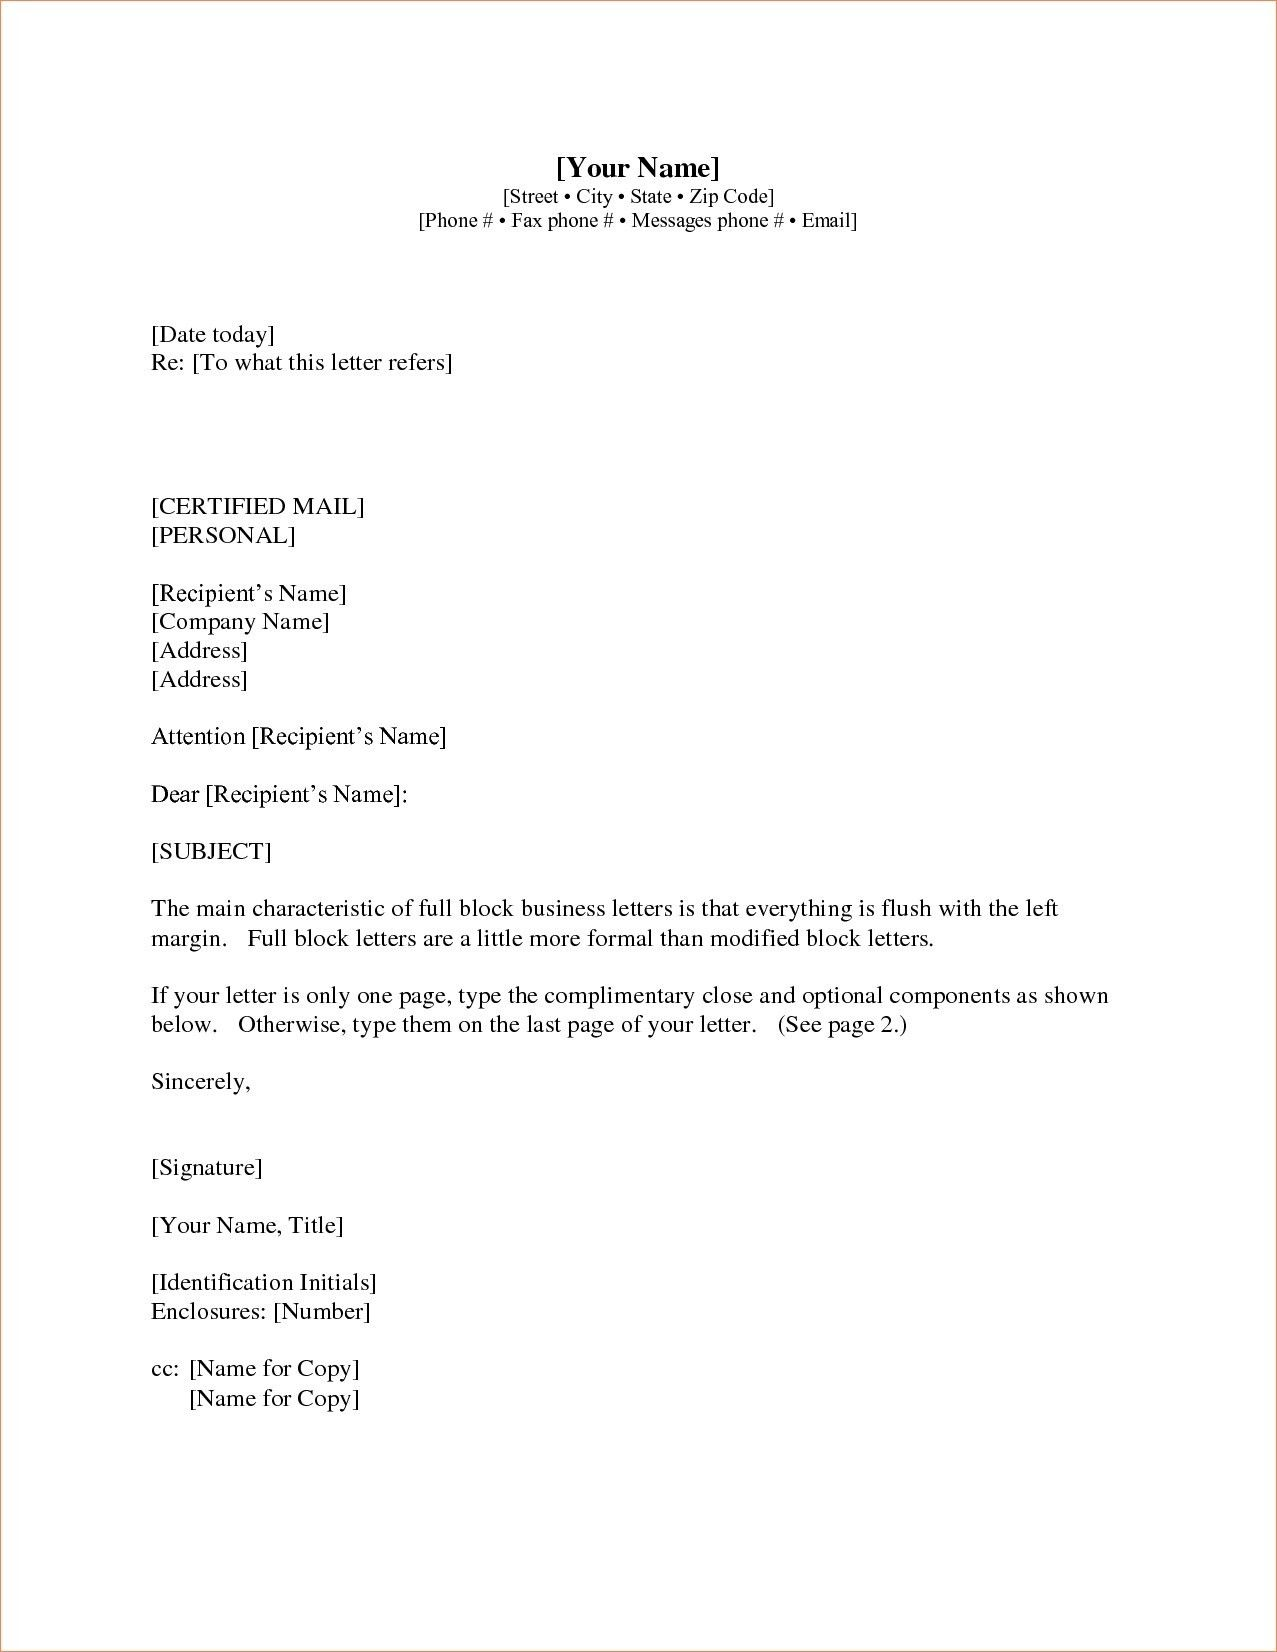 new format for business letter with enclosure and cc